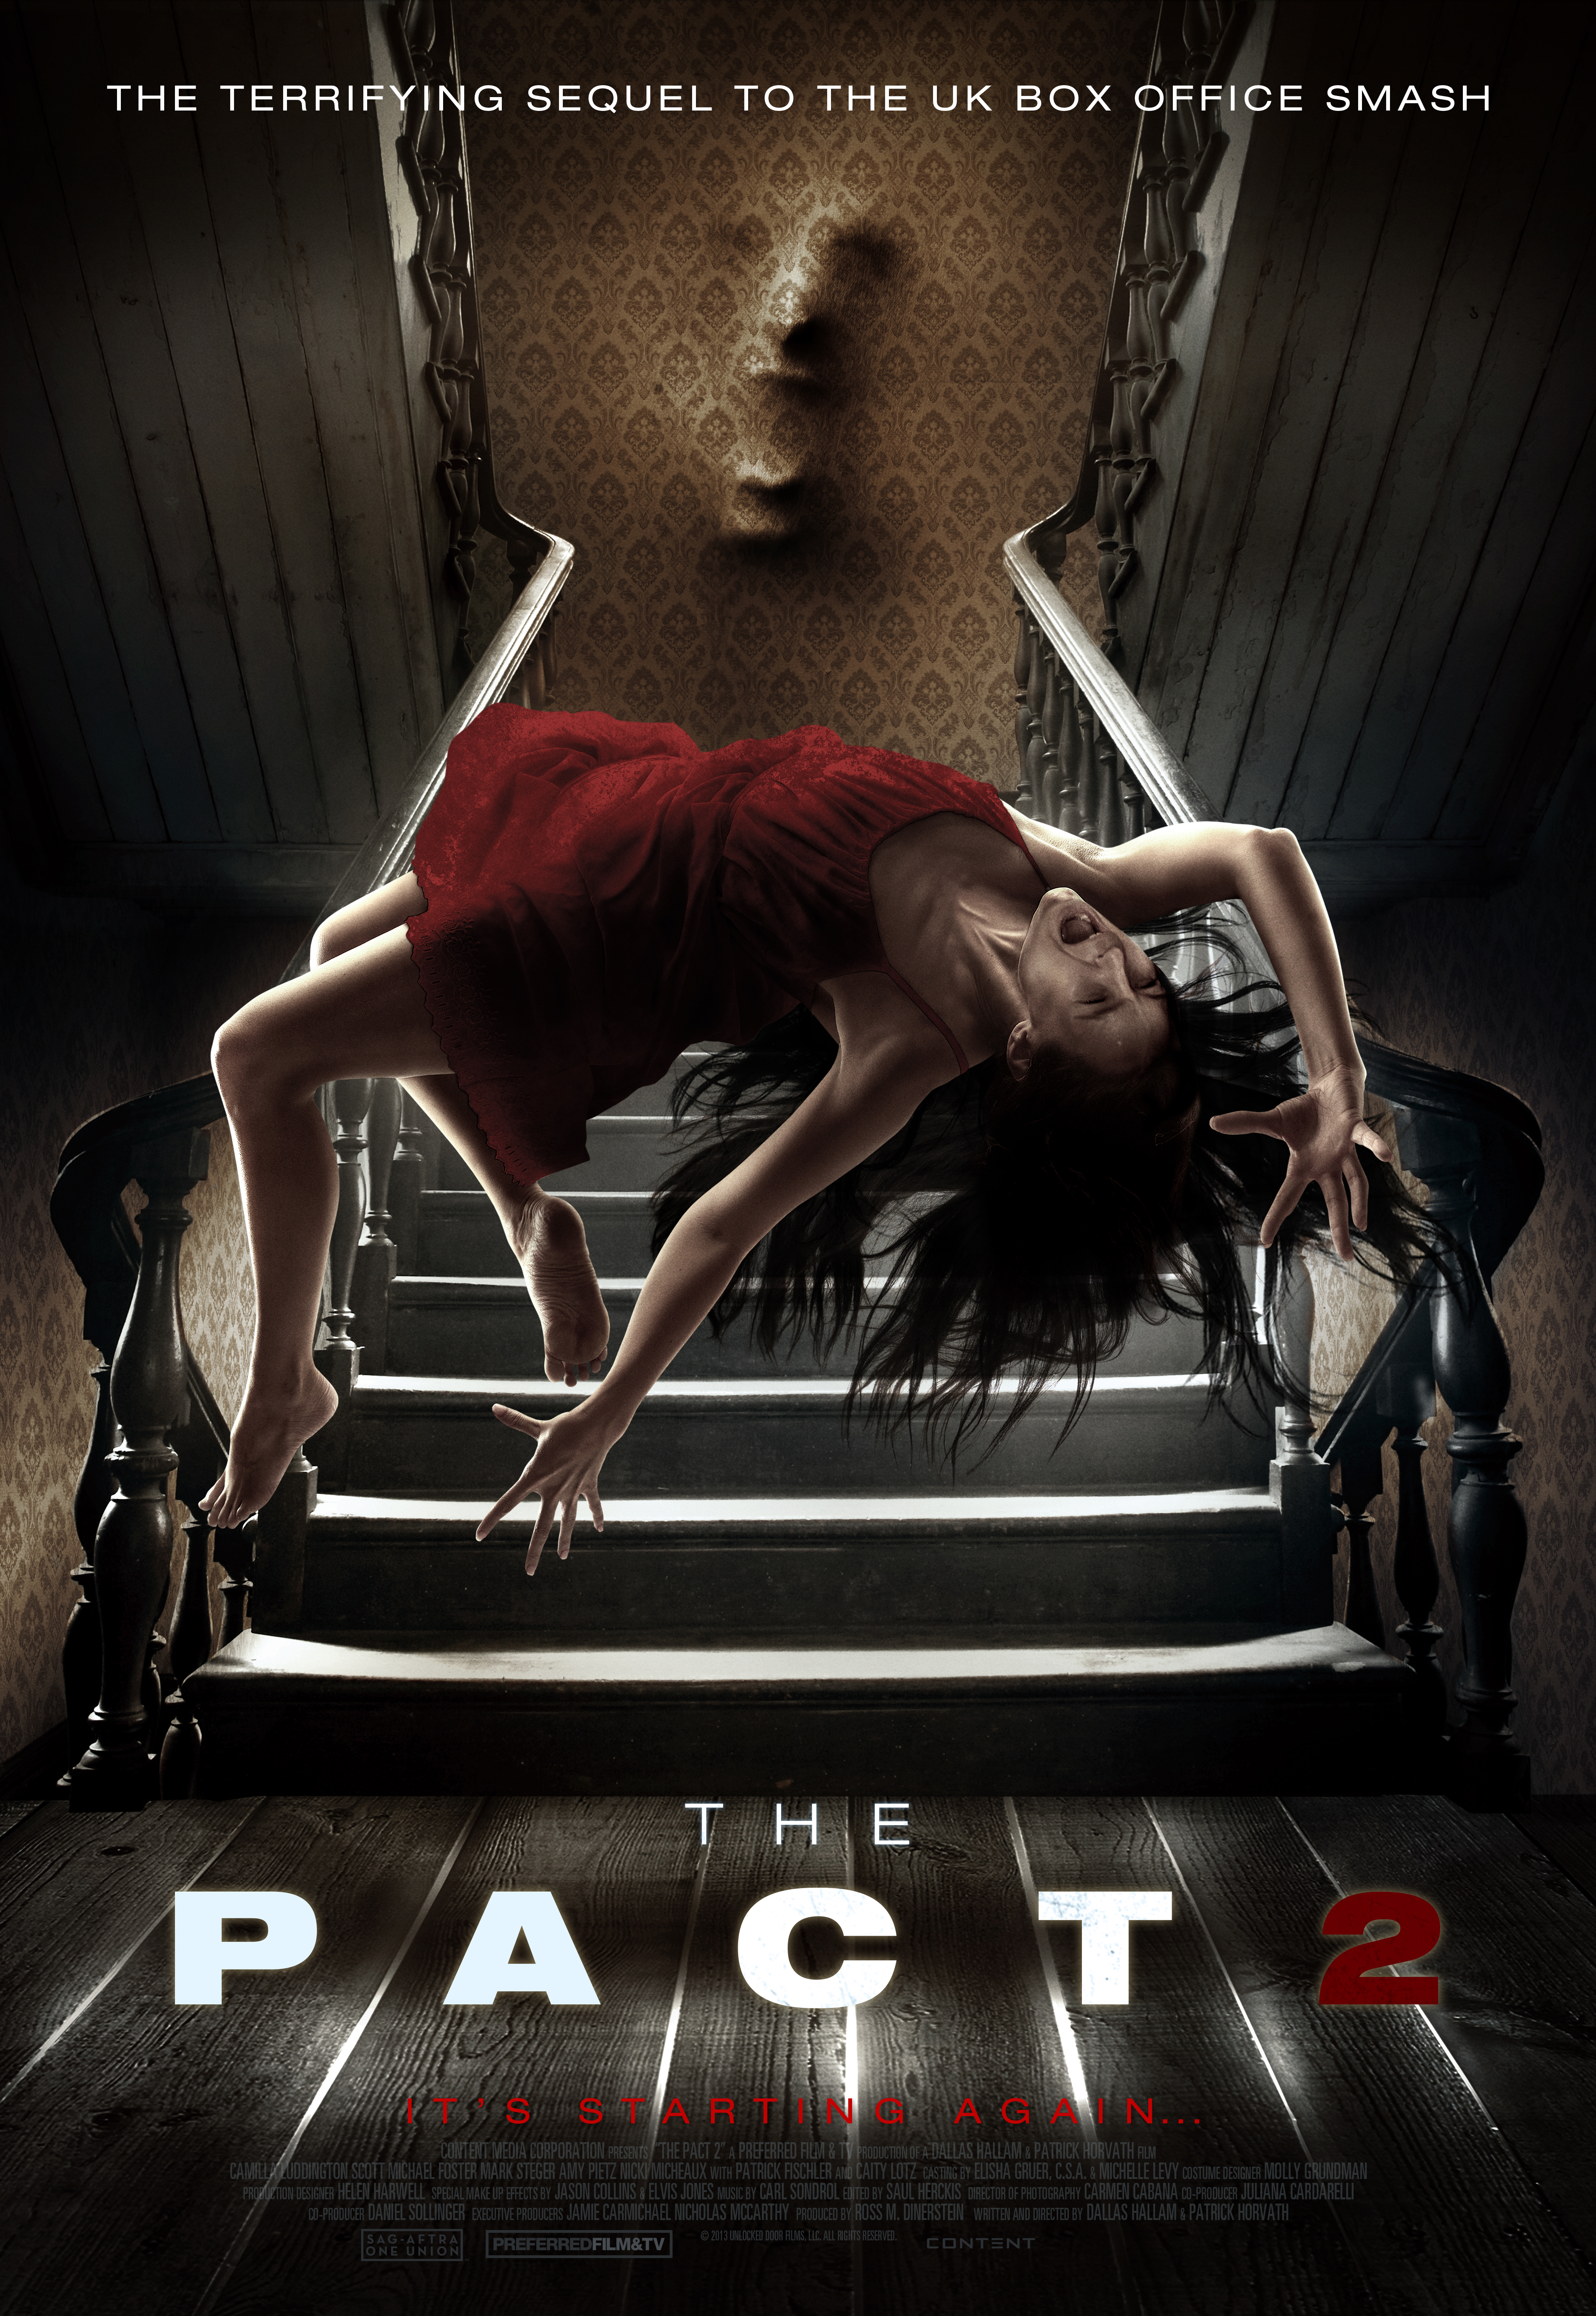 the pact 2 movie free download